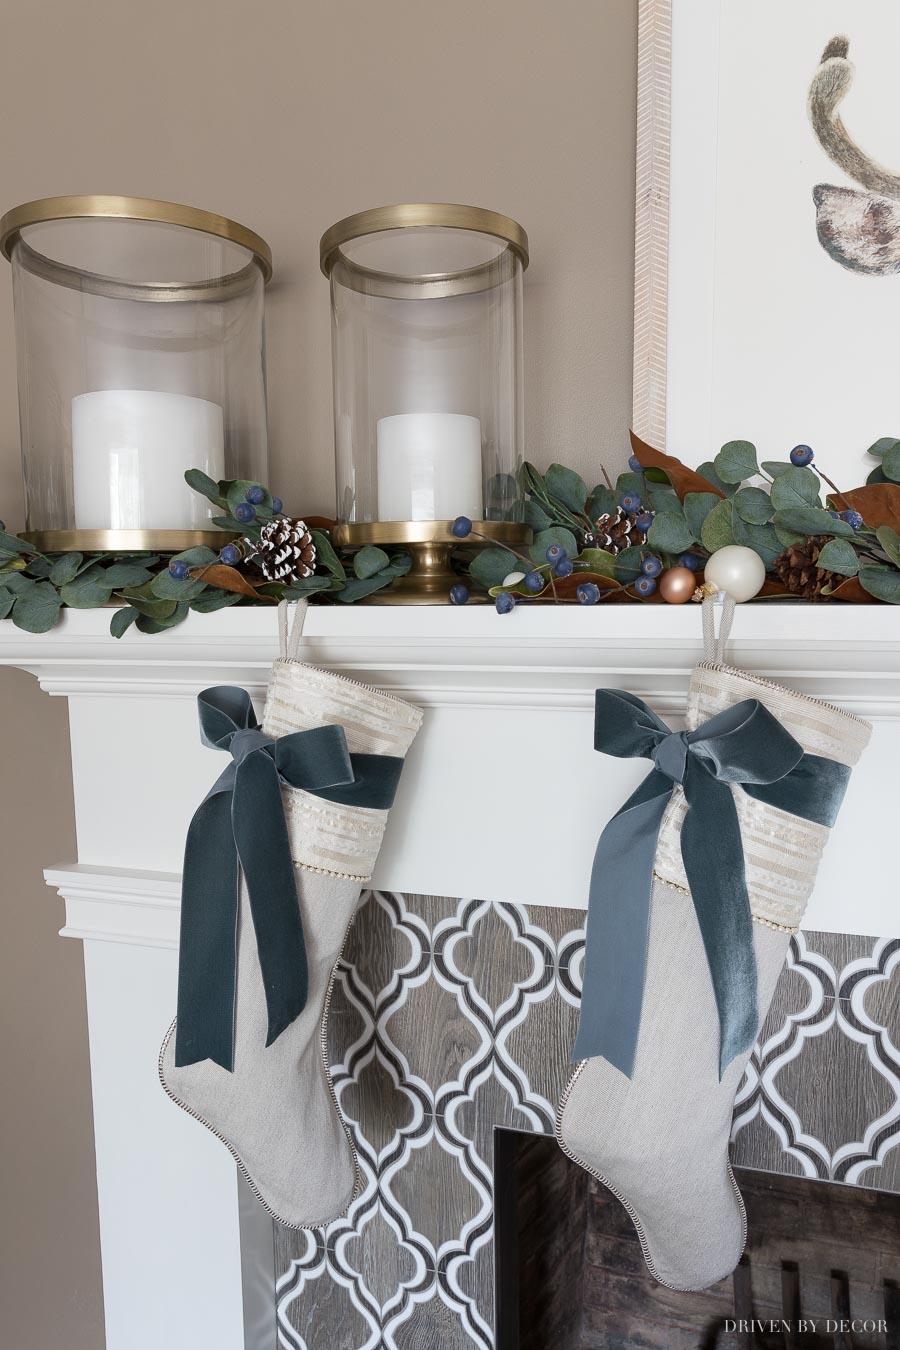 Our fireplace mantel at Christmas with brass hurricanes and a eucalyptus garland